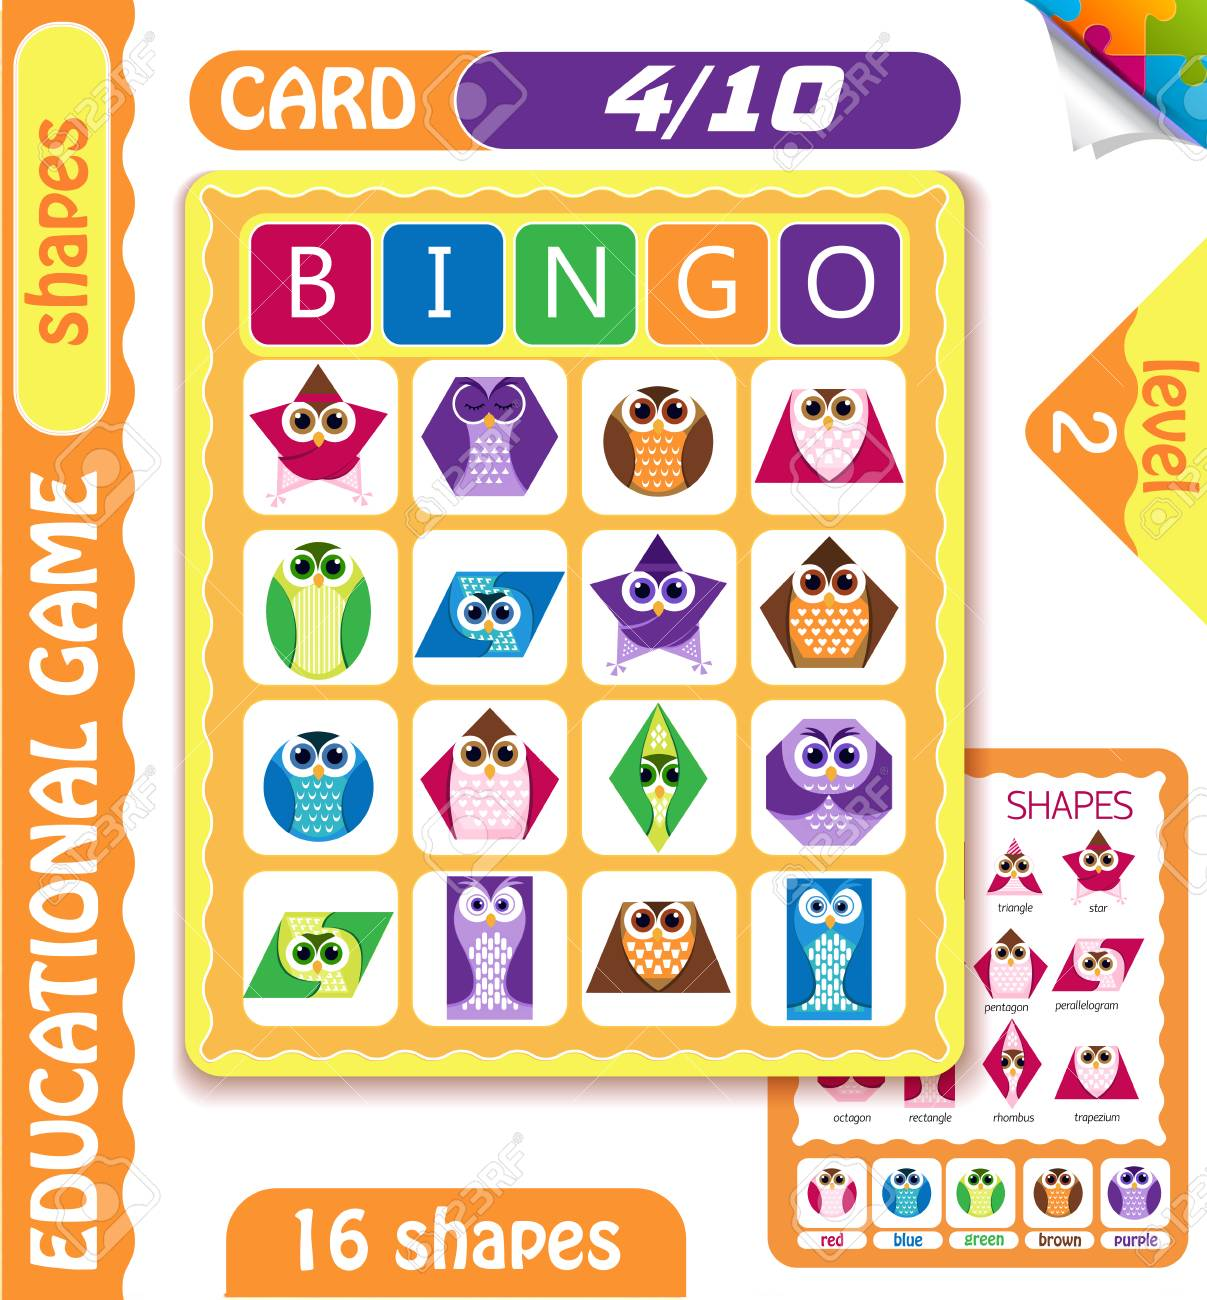 Educational Bingo Game For Preschool Kids With Shapes In The Form Of Owls Cards